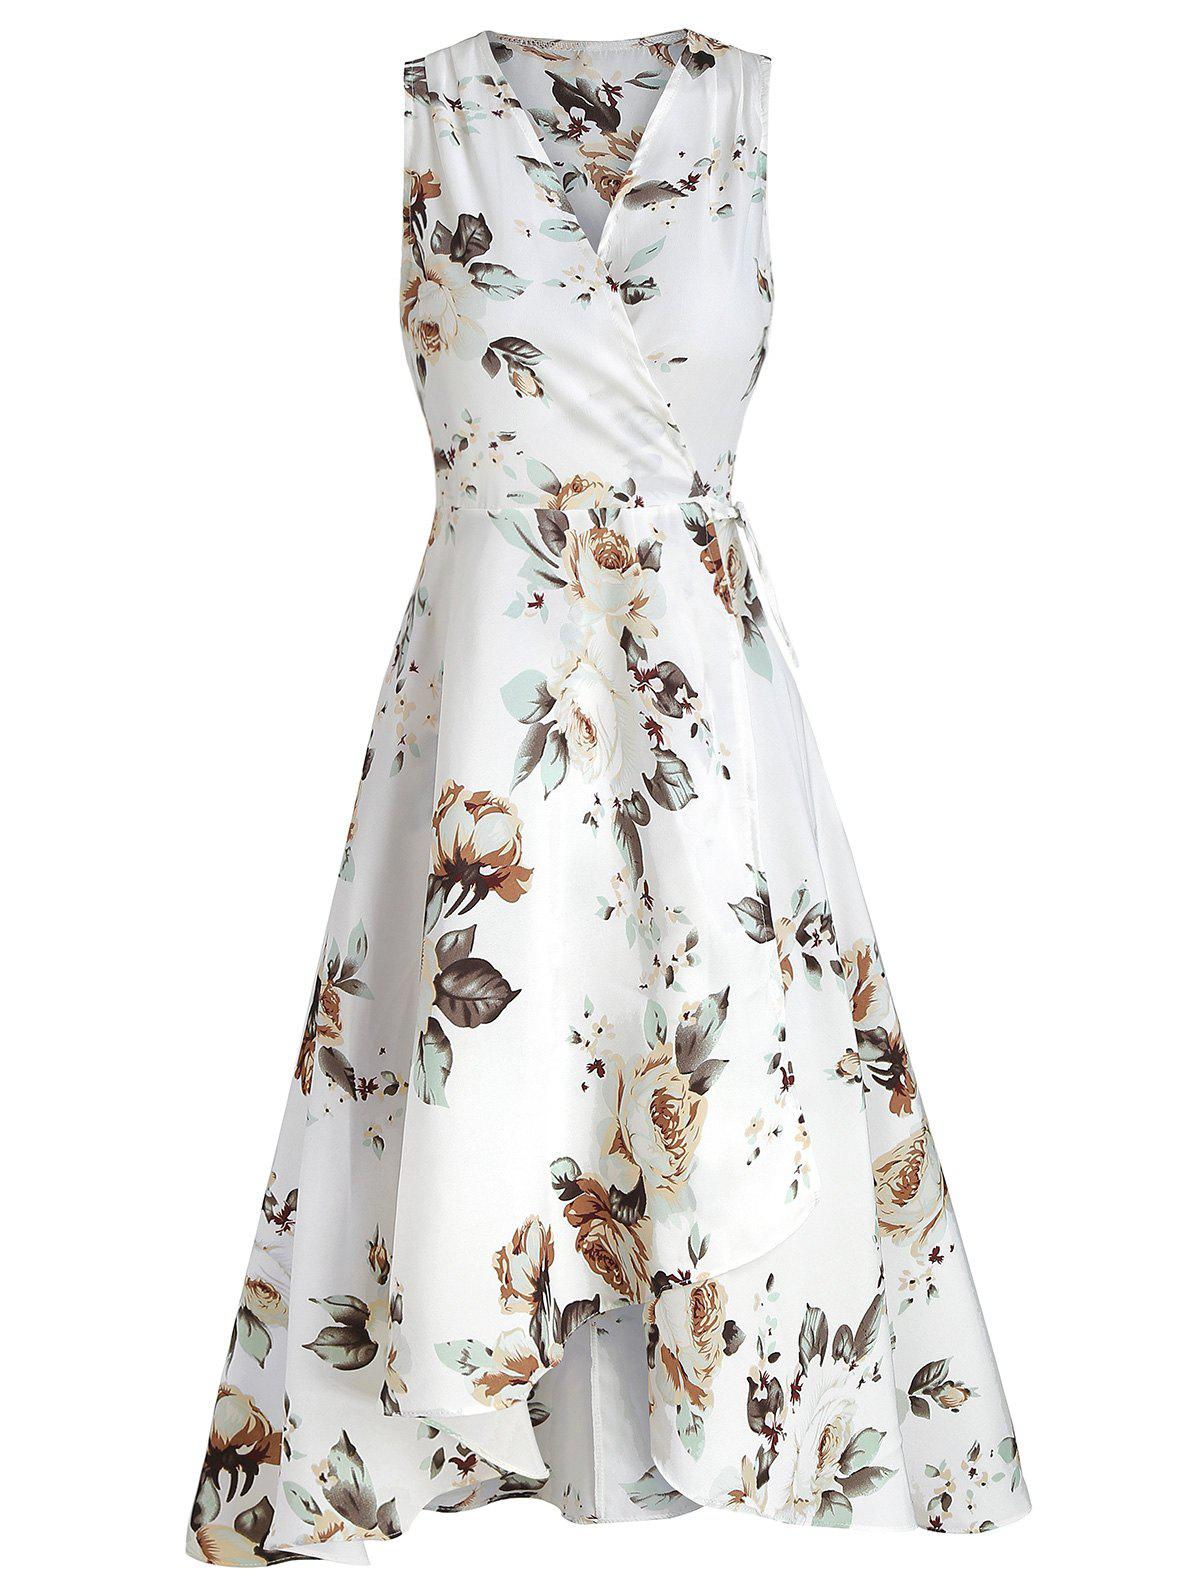 New Wrap Floral Print High Low Hem Dress